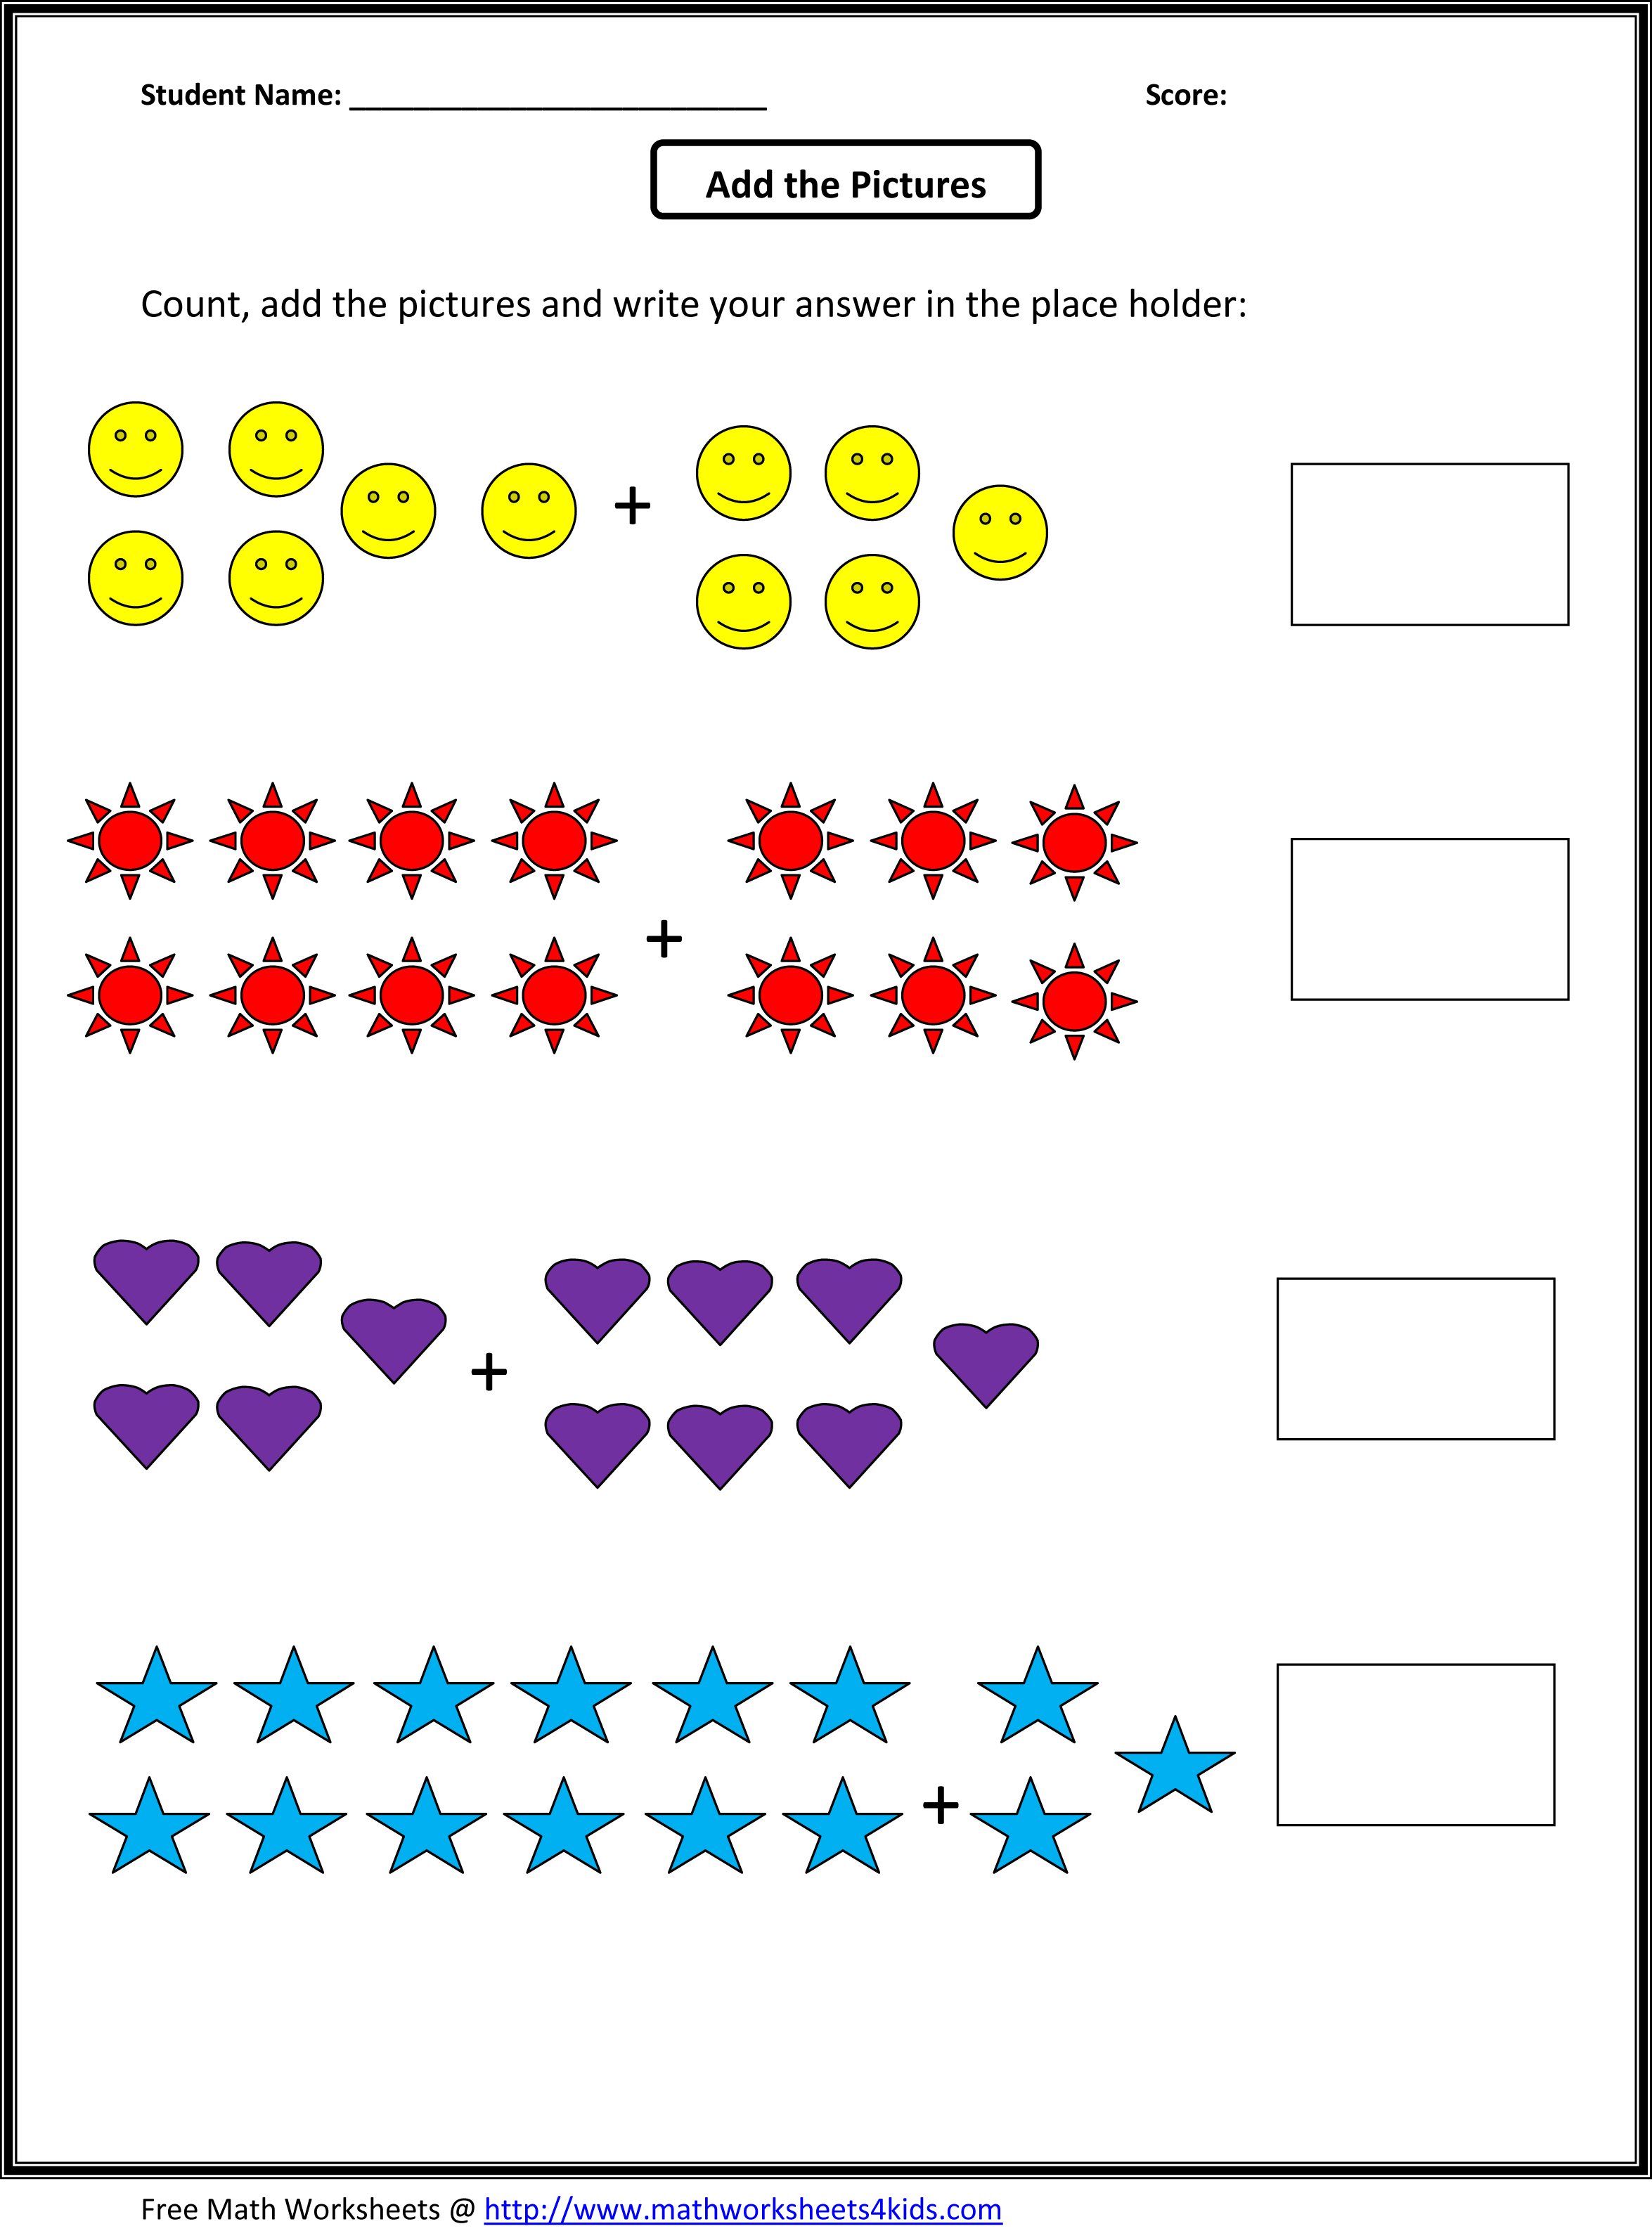 Weirdmailus  Inspiring Grade  Maths Worksheet  Reocurent With Engaging Math Worksheets For St Grade Free  Reocurent With Delightful Identifying Subjects And Predicates Worksheets Also Creative Writing Worksheets For Grade  In Addition Victorian Handwriting Worksheets And French Adjectives Worksheets As Well As Bank Statement Worksheet Additionally Capital Cities Worksheet From Reocurentcom With Weirdmailus  Engaging Grade  Maths Worksheet  Reocurent With Delightful Math Worksheets For St Grade Free  Reocurent And Inspiring Identifying Subjects And Predicates Worksheets Also Creative Writing Worksheets For Grade  In Addition Victorian Handwriting Worksheets From Reocurentcom